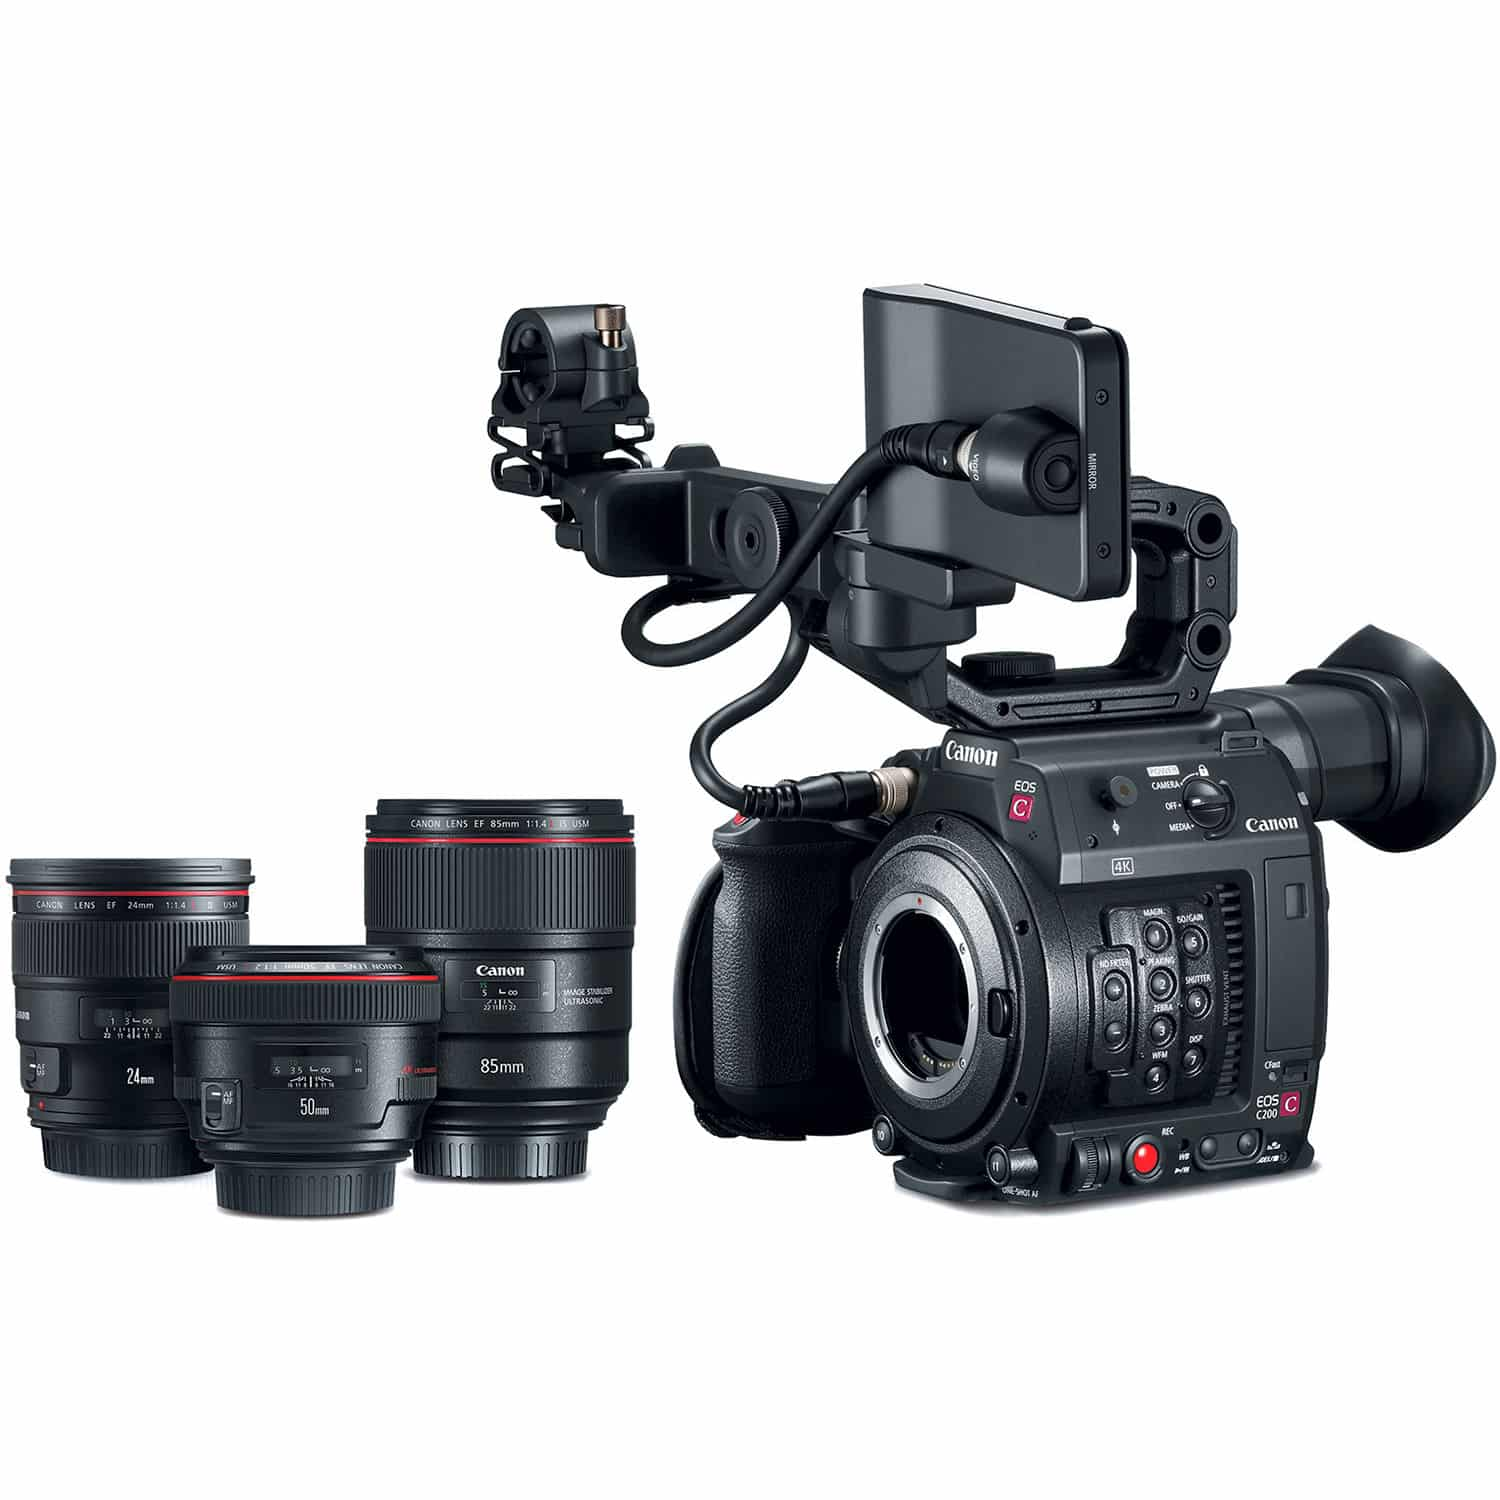 Canon c200 | Best Camera For YouTube Vlogging | YouTube Camera Kit